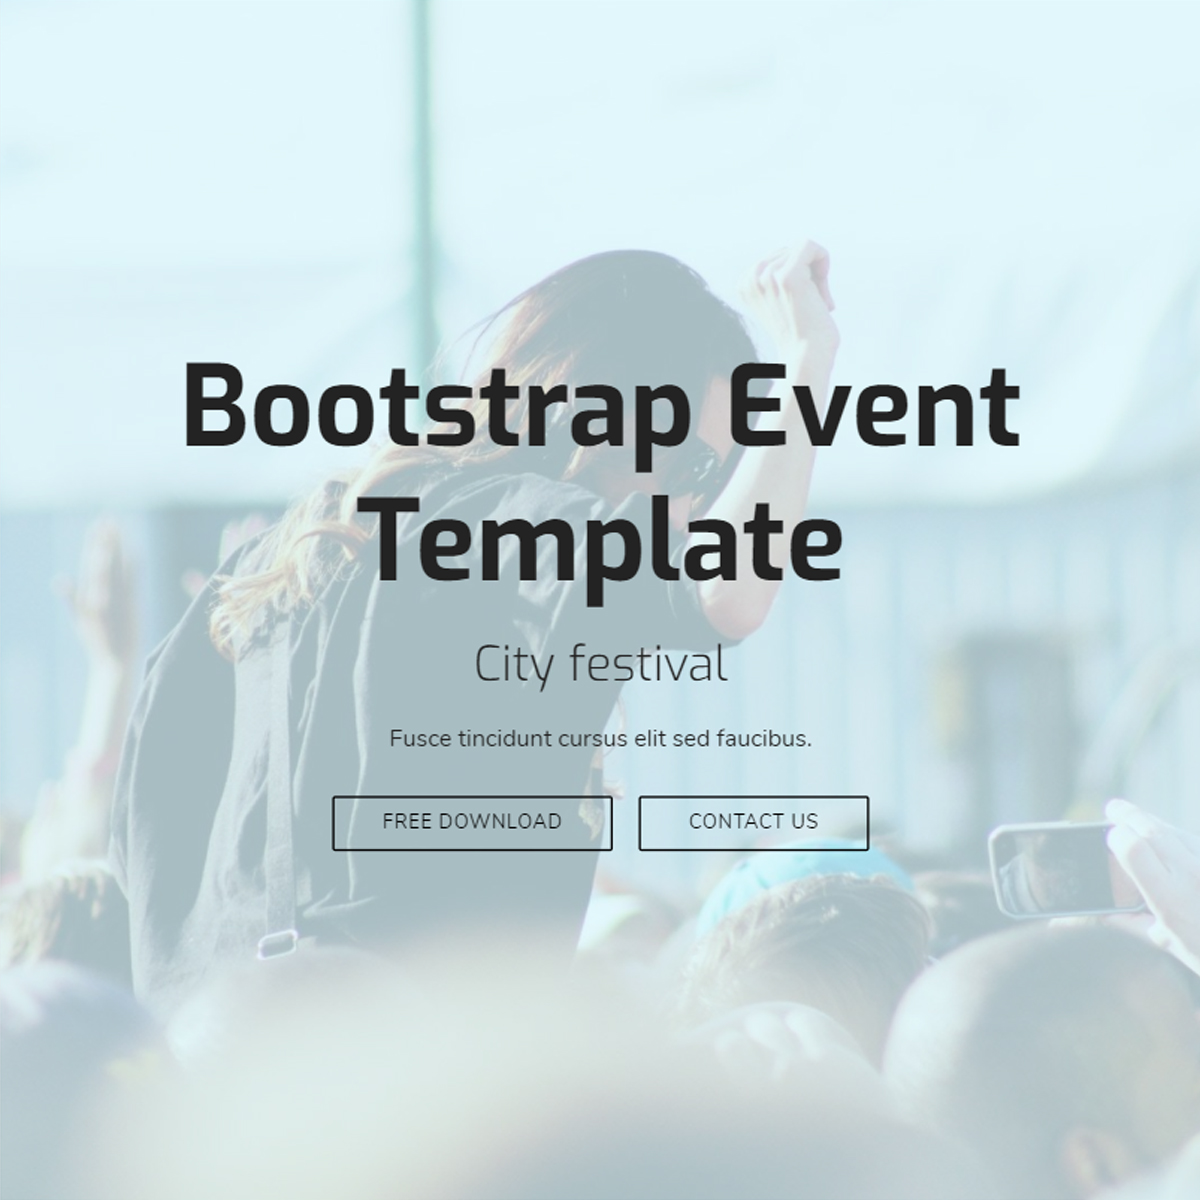 HTML Bootstrap Event Templates